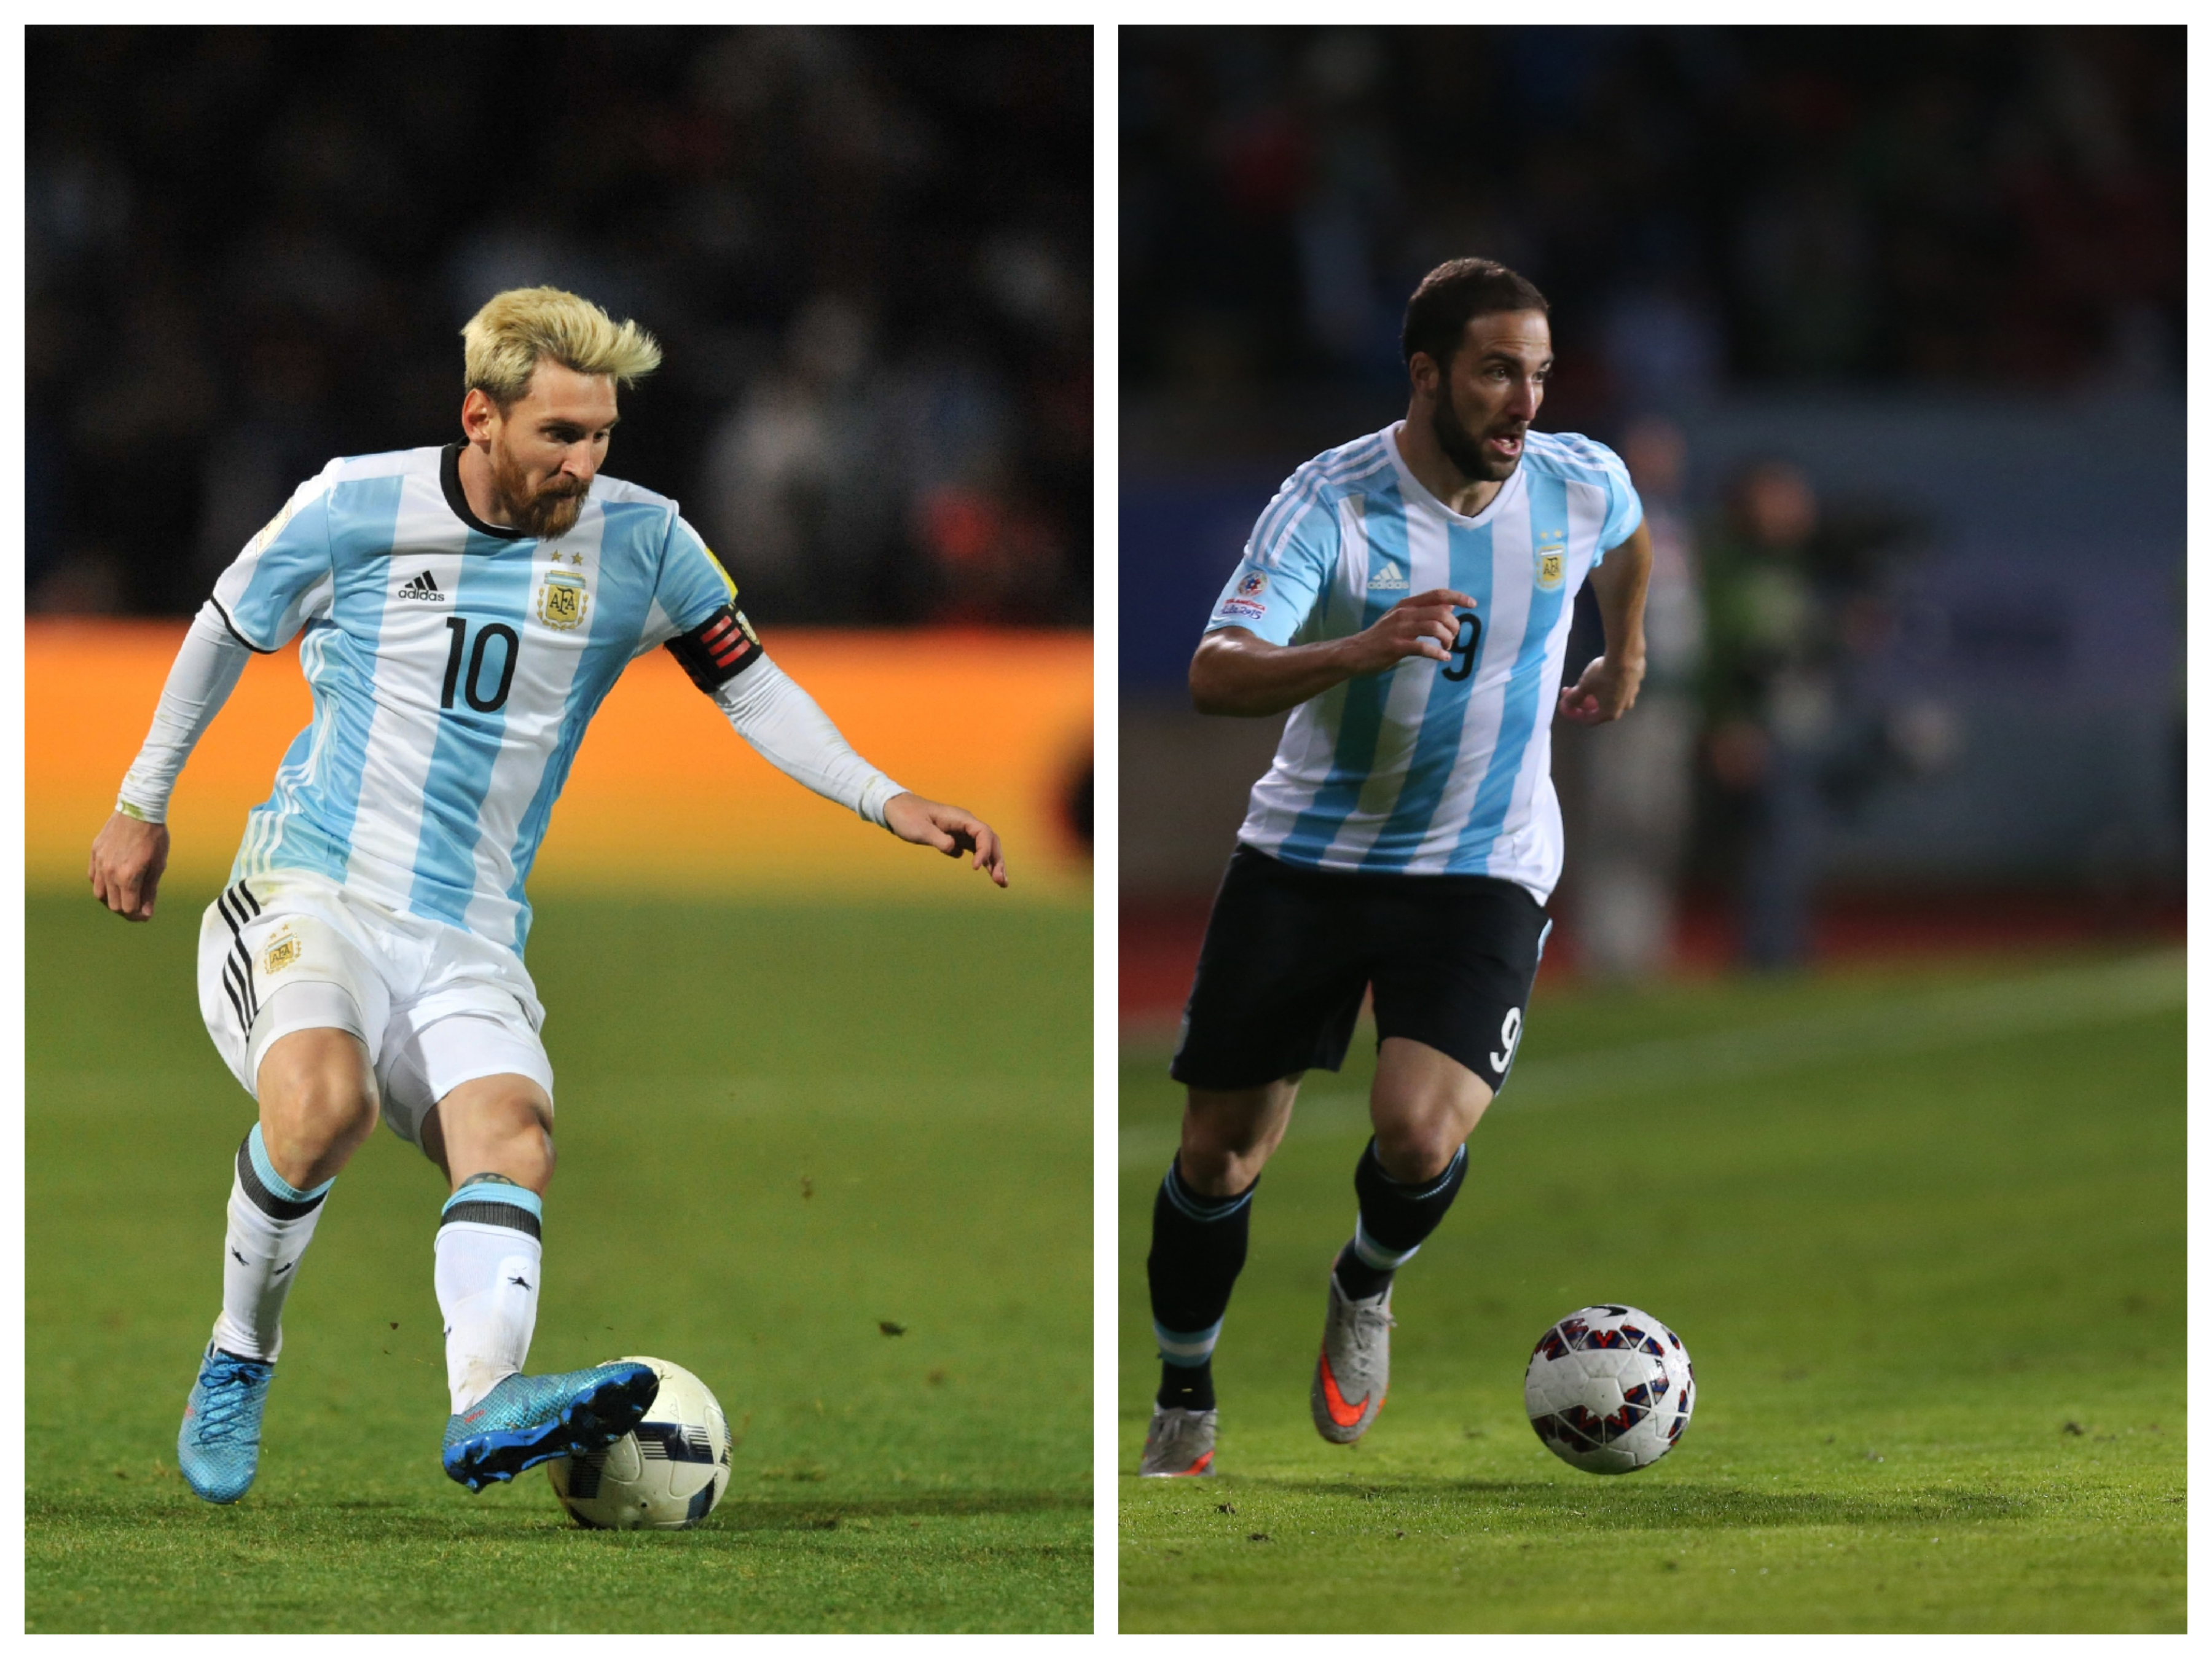 Lionel Messi (left) and Gonzalo Higuain will be absent for the match.